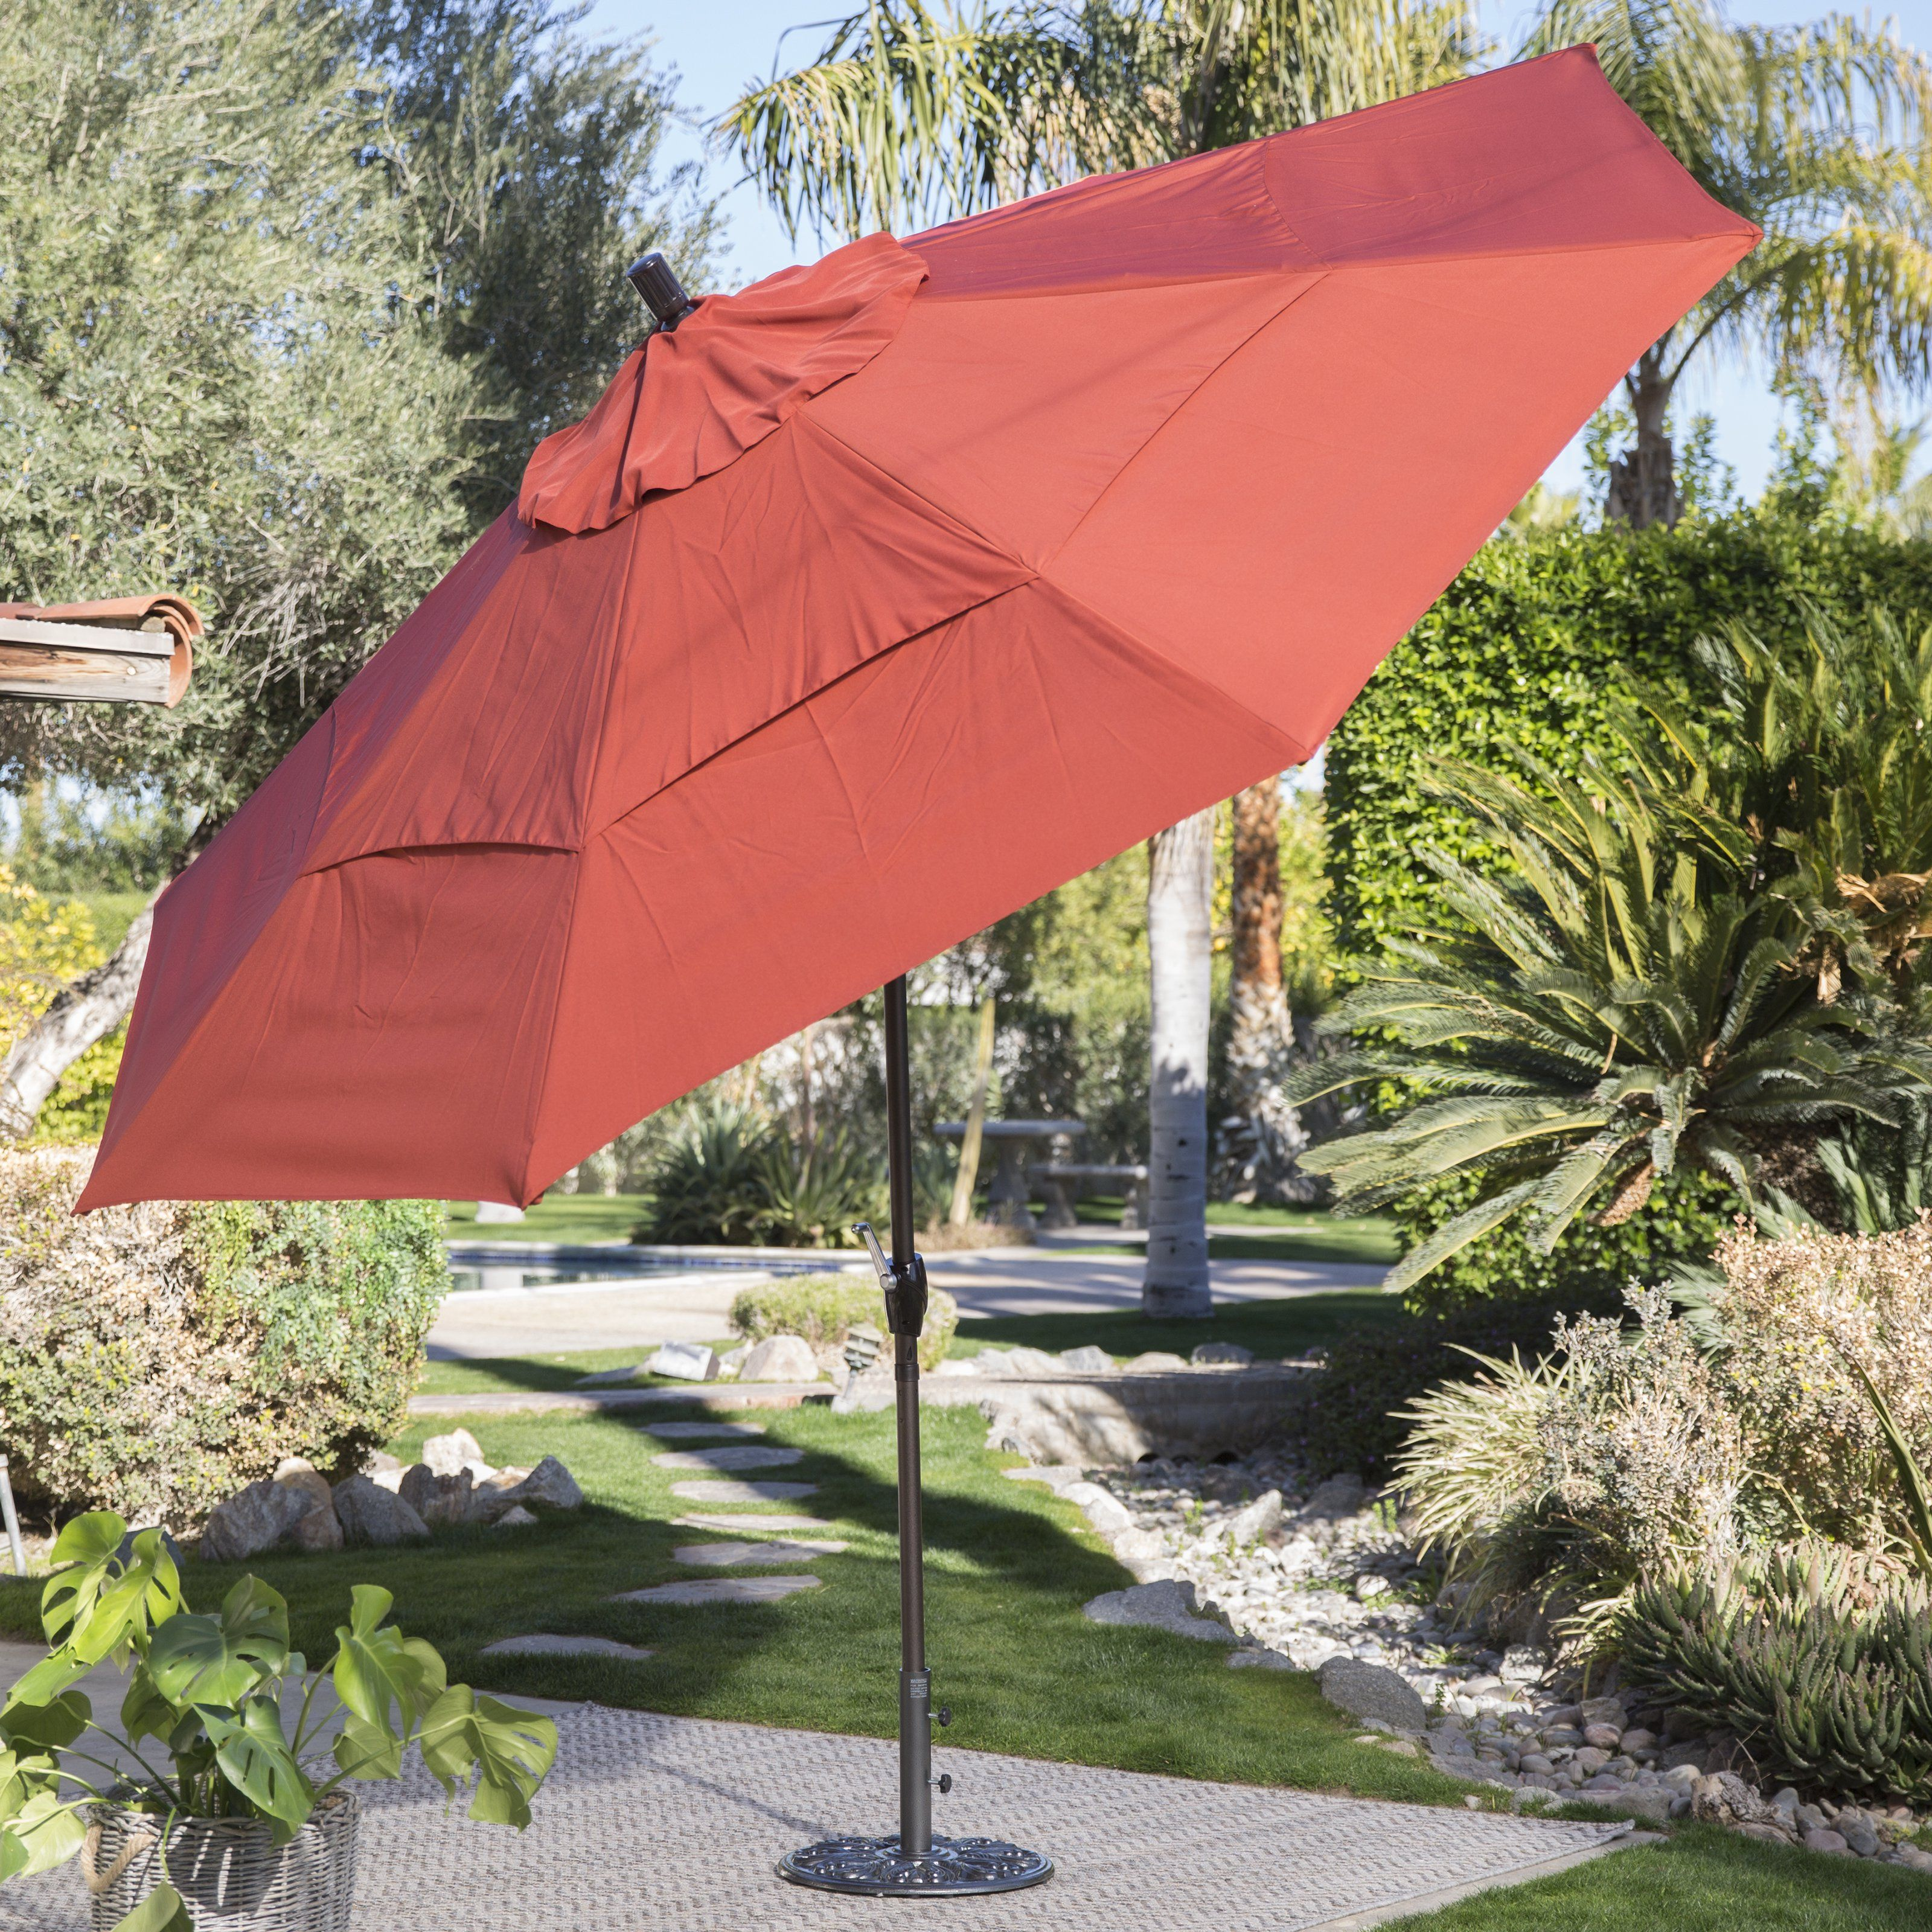 Coral Coast 11 ft Spun Polyster Patio Umbrella with Push Button